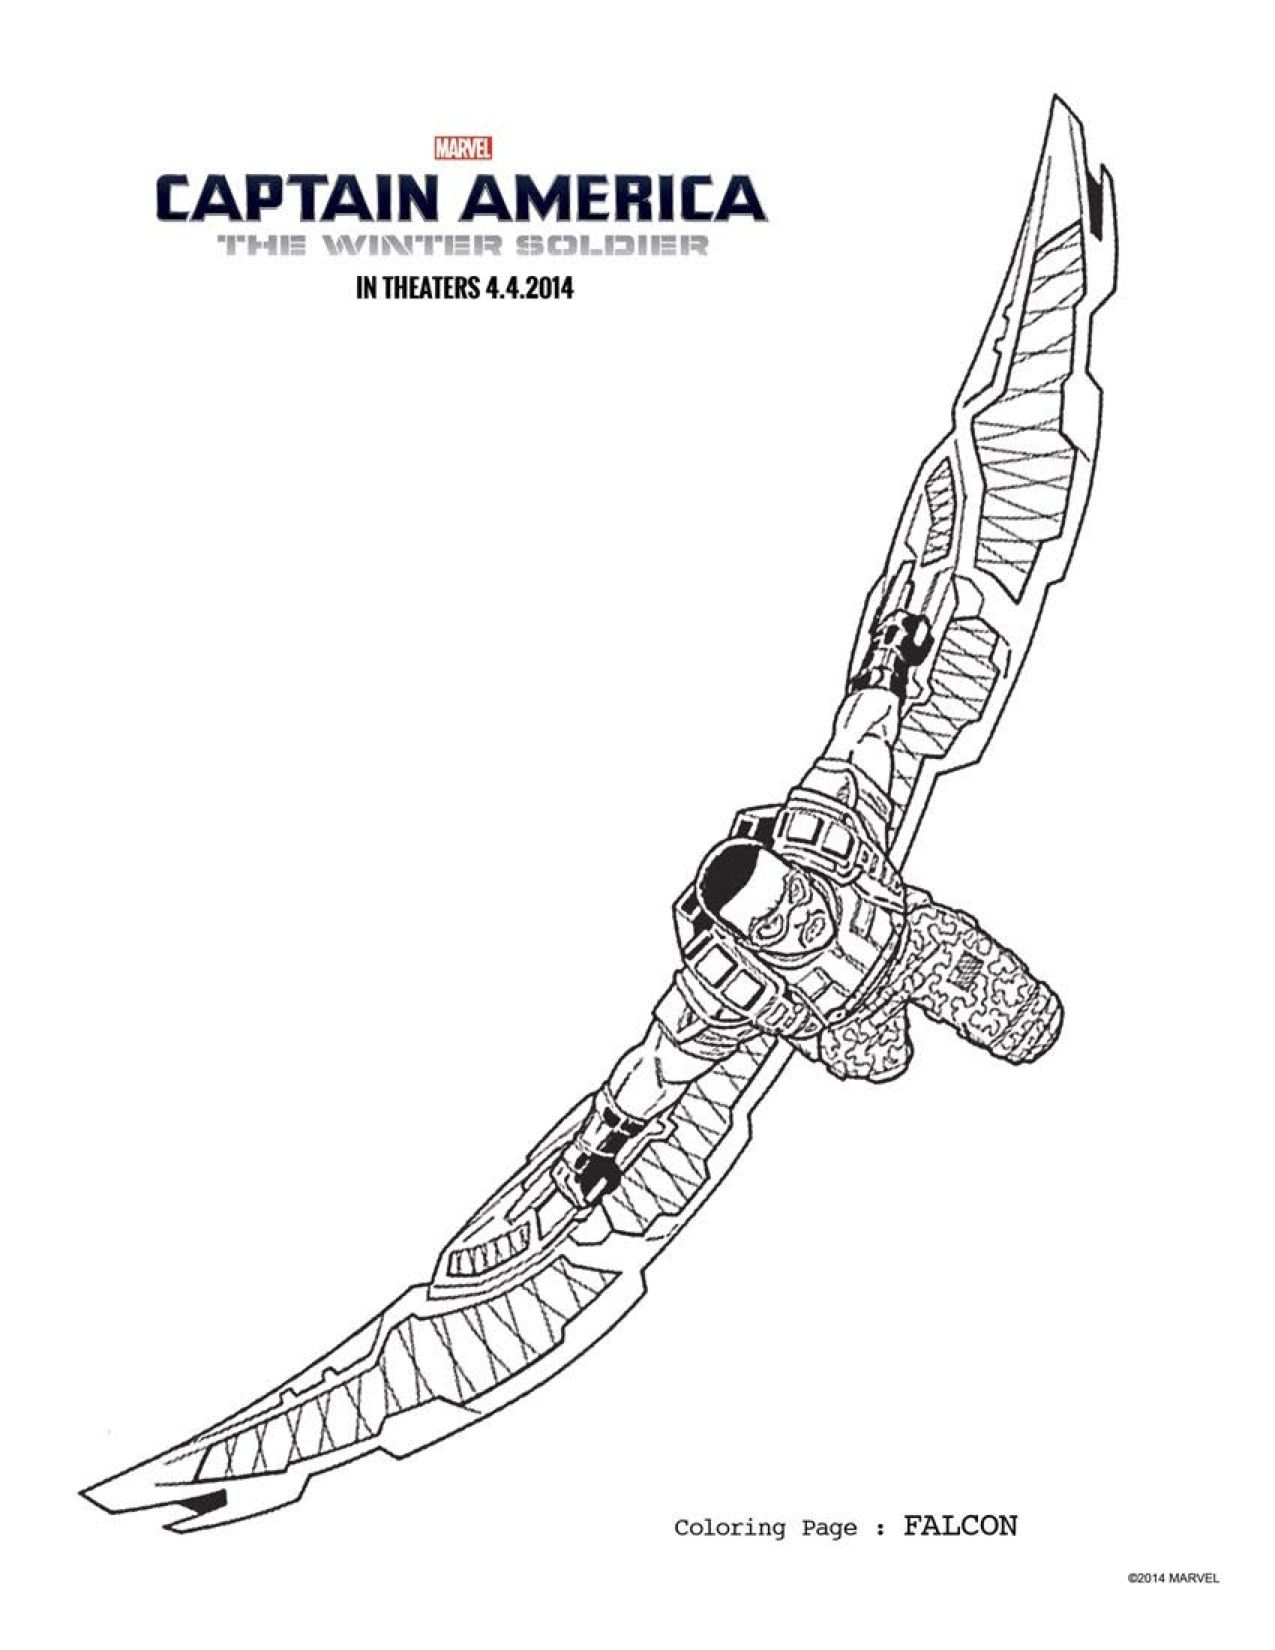 #5 CAPTAIN AMERICA: THE WINTER SOLDIER coloring sheets to